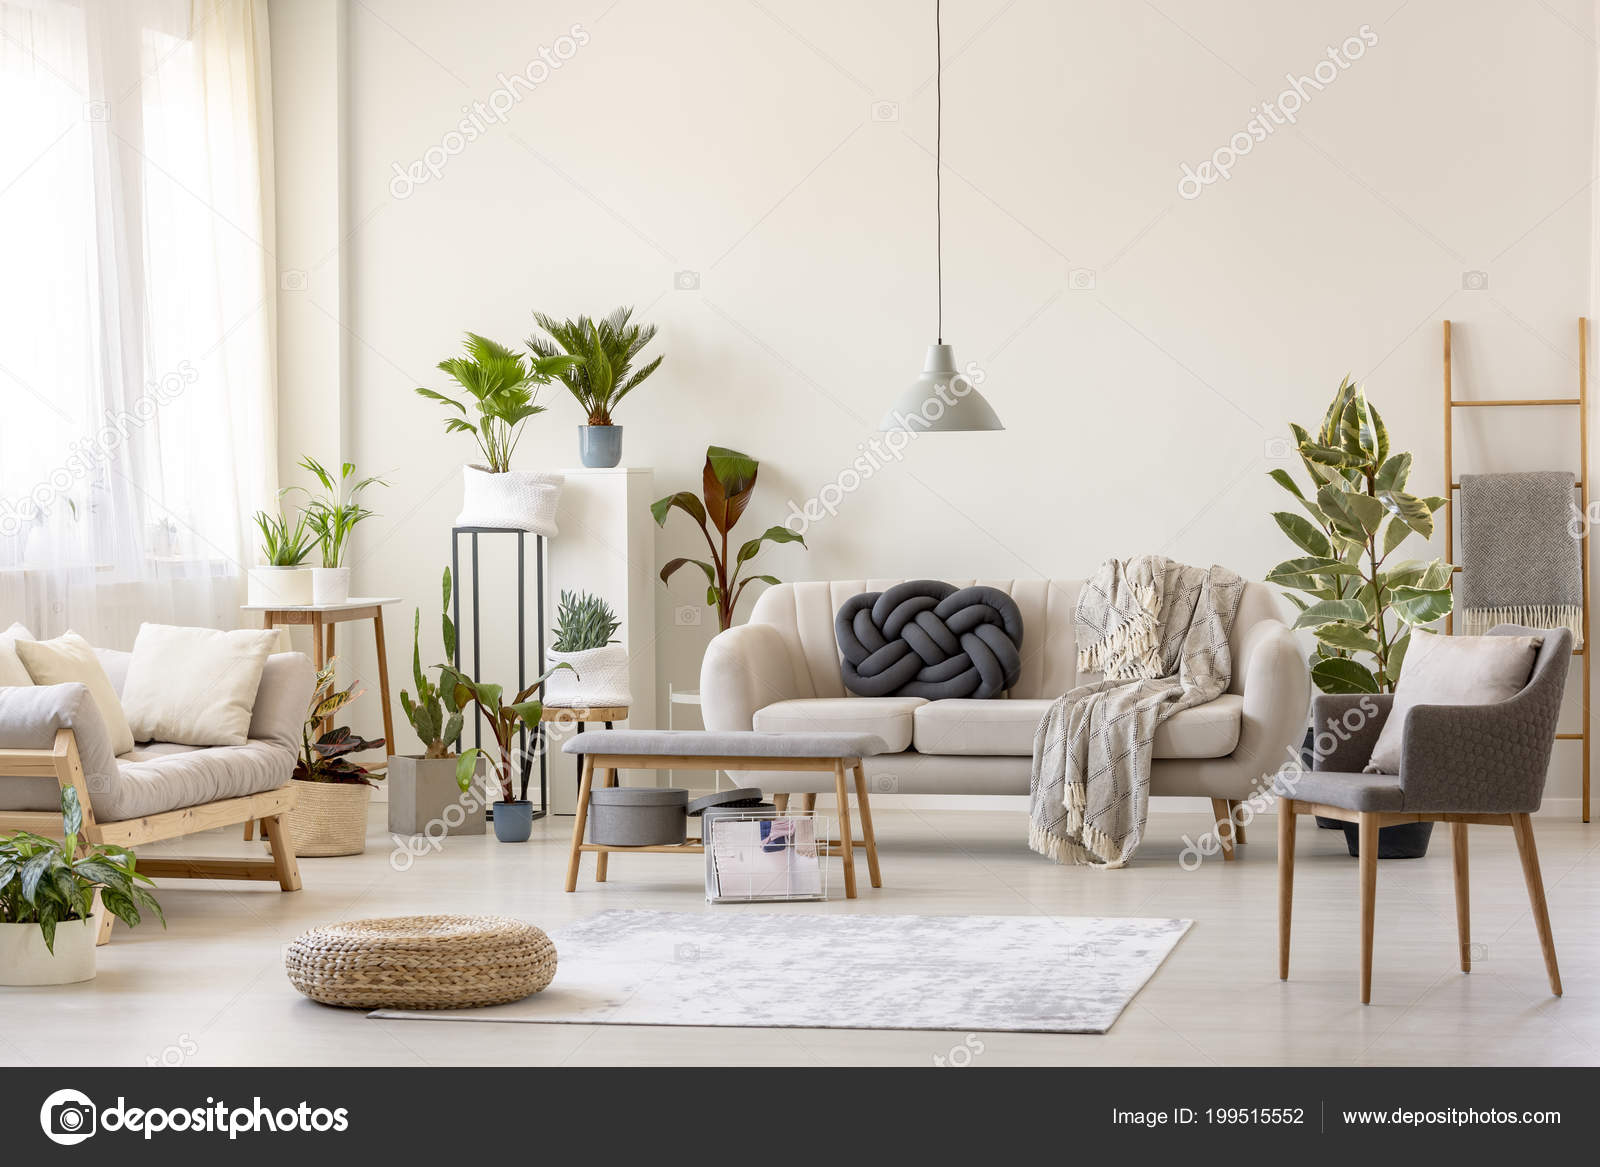 Excellent Pouf Rug Plants Spacious Living Room Interior Grey Chair Gamerscity Chair Design For Home Gamerscityorg